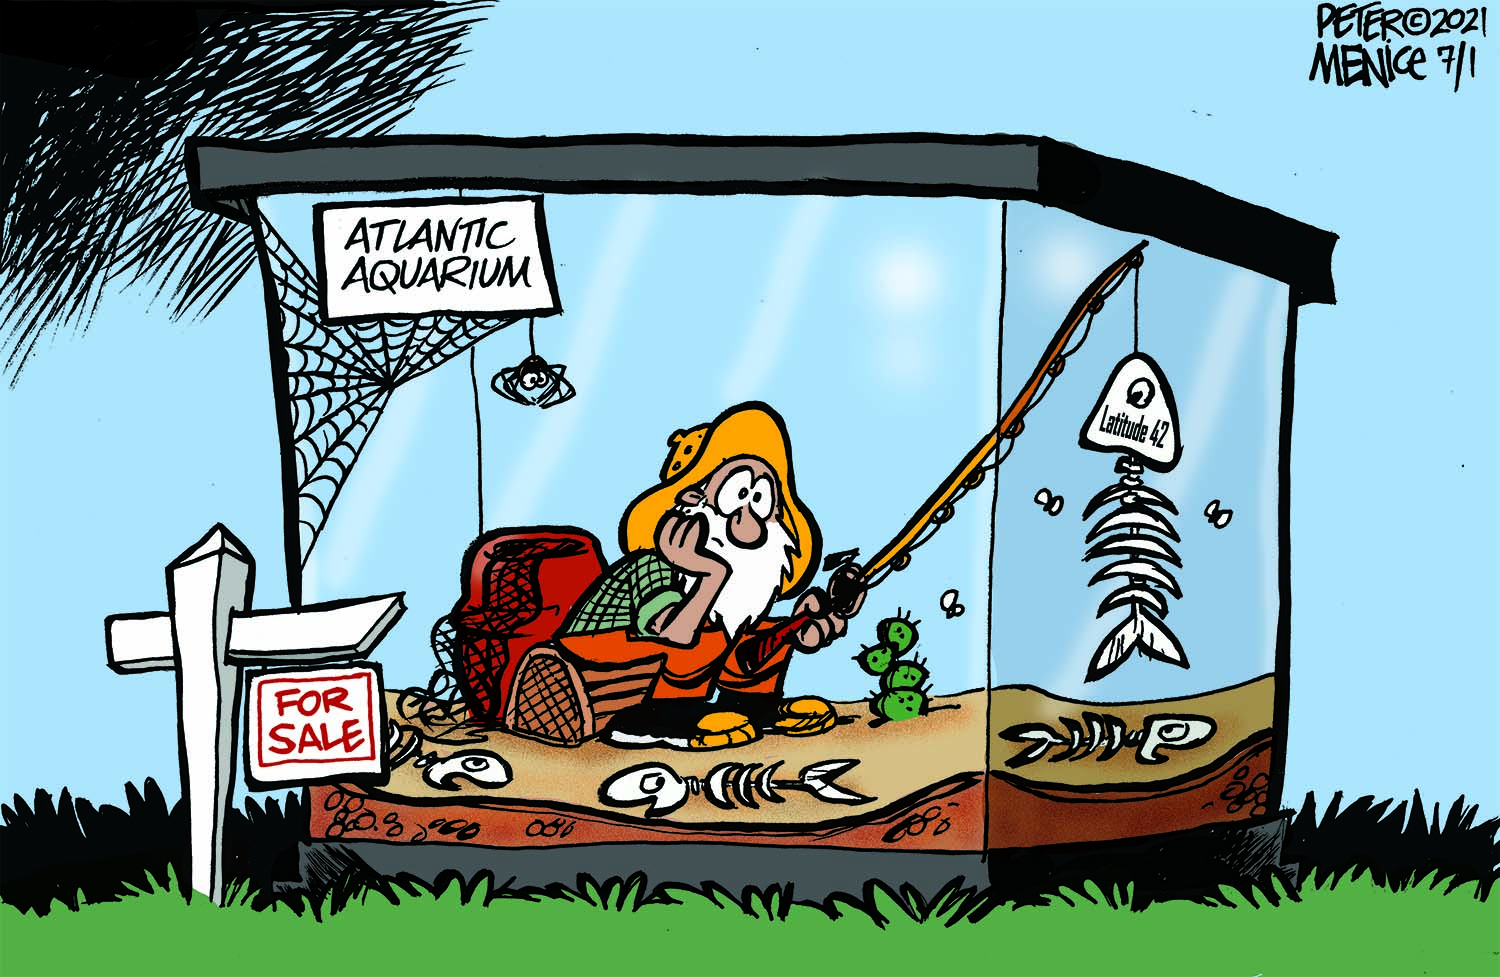 Cartoon of man in life size fish taking fishing with a dead fish bone skeleton on his fishing book that says latitude 42 on the side